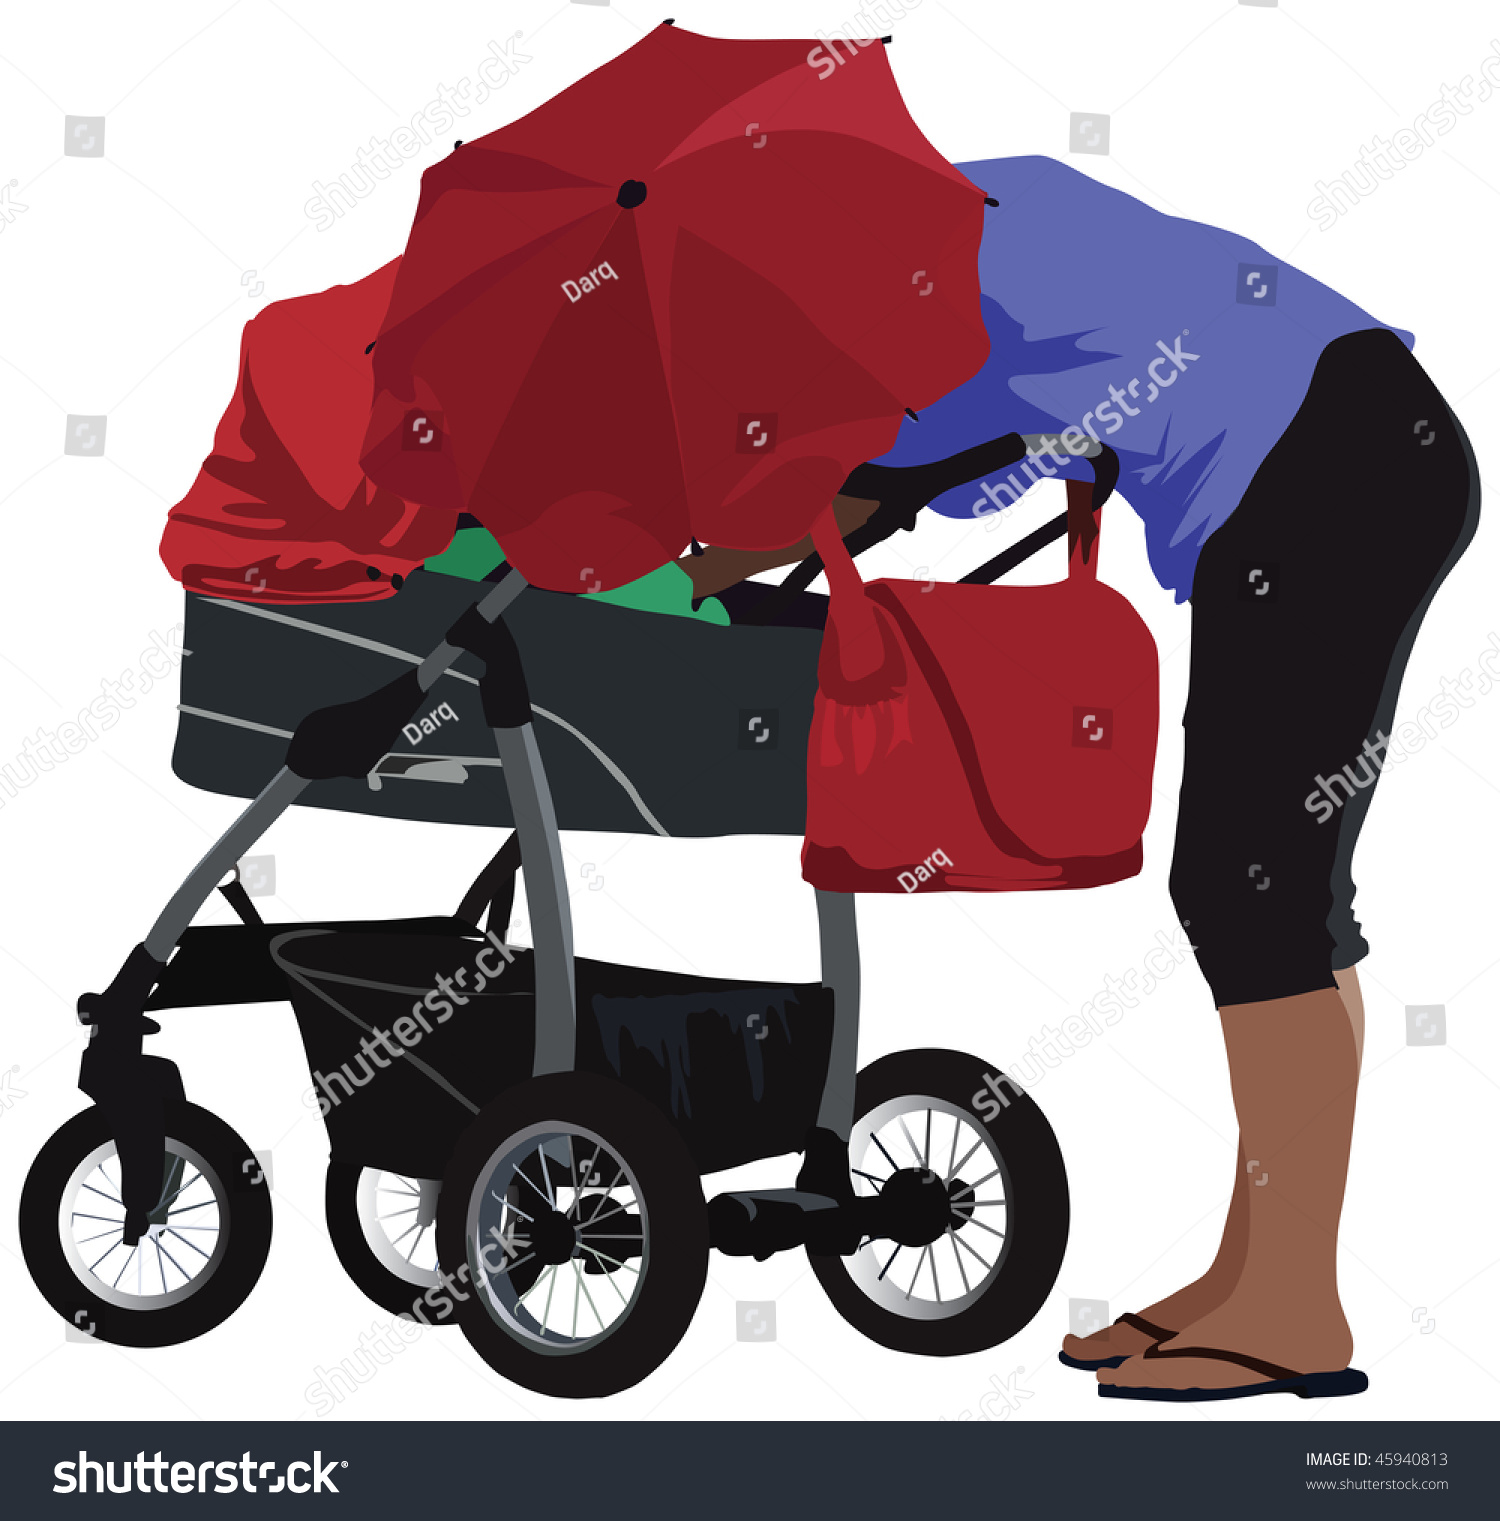 Baby Pram Umbrella Modern Pram Umbrella Mother Taking Care Royalty Free Stock